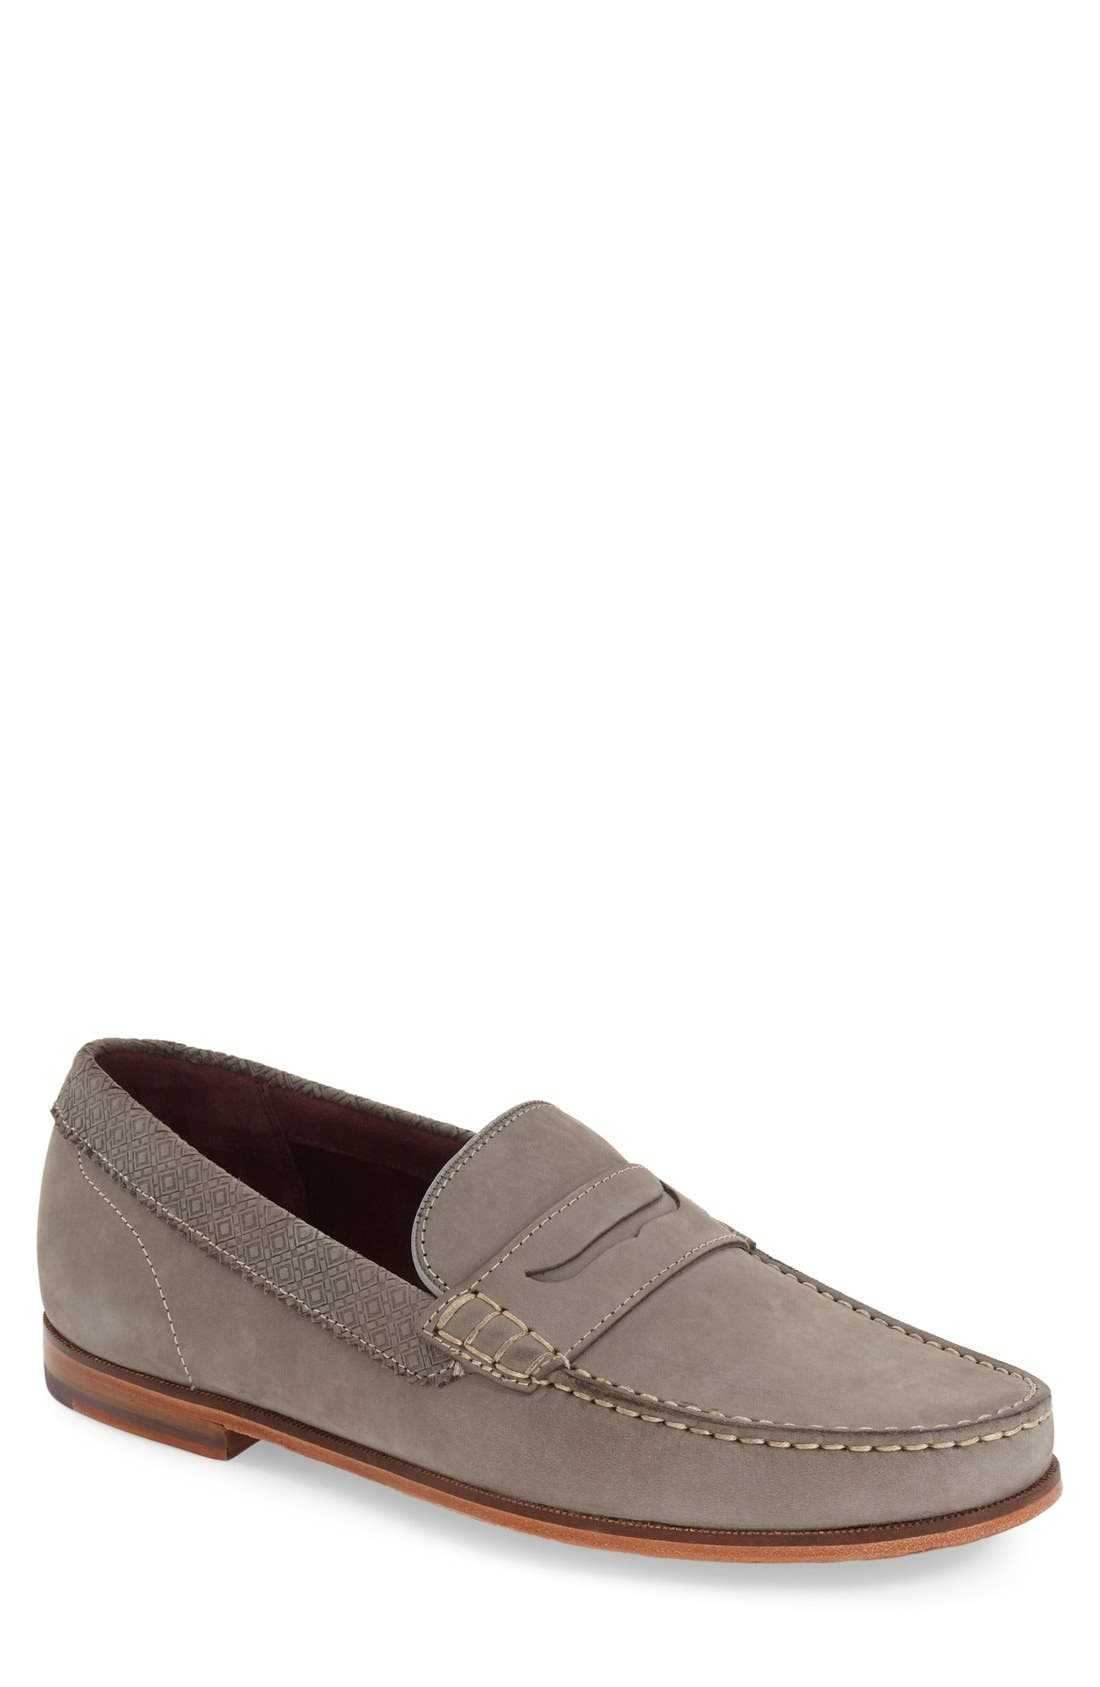 'Miicke 2' Penny Loafer,                         Main,                         color, 055